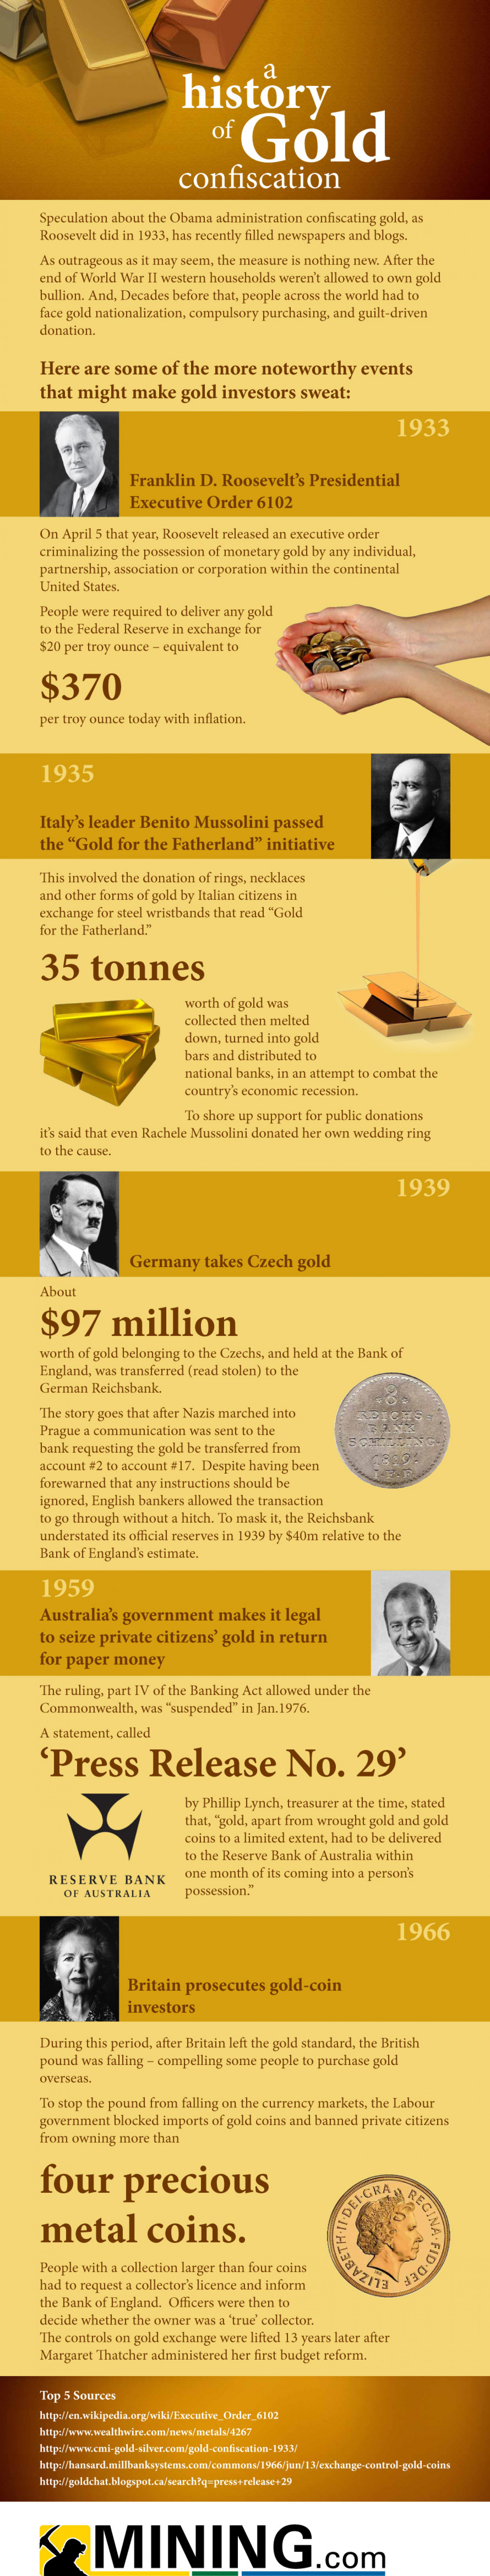 A history of gold confiscation Infographic